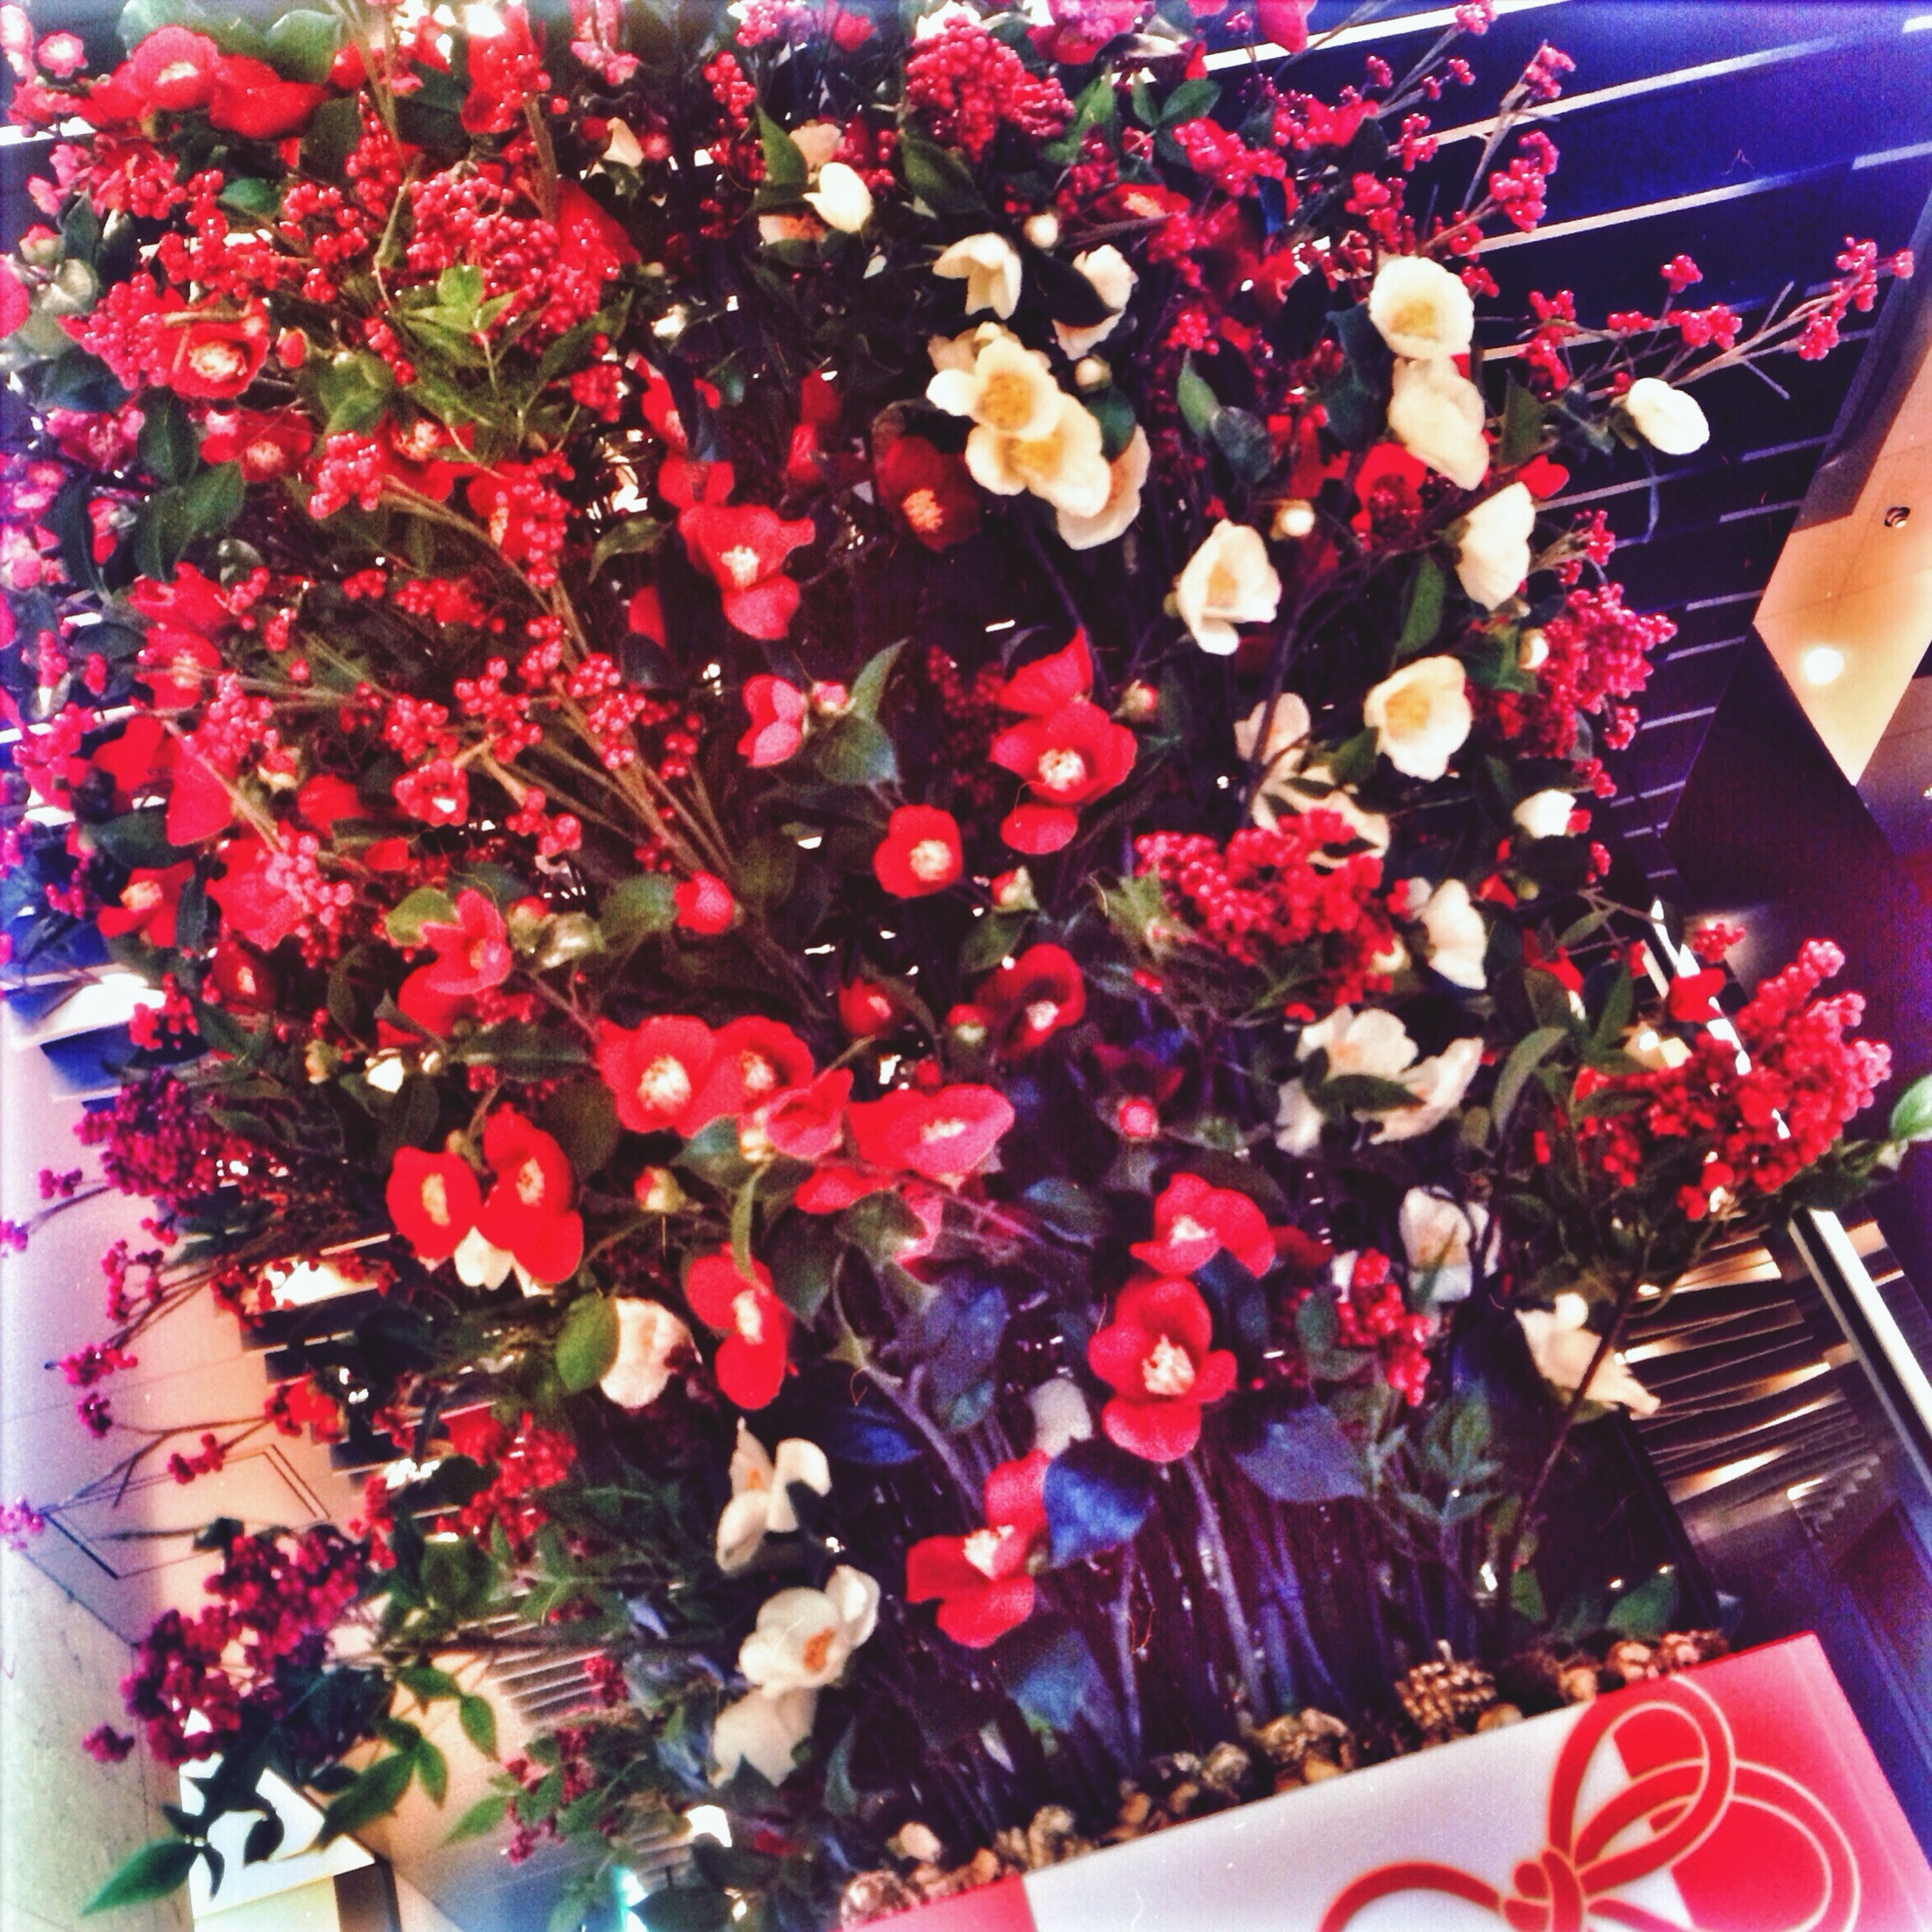 indoors, decoration, high angle view, flower, variation, red, pink color, multi colored, celebration, abundance, close-up, choice, christmas, large group of objects, freshness, no people, bouquet, still life, decor, hanging